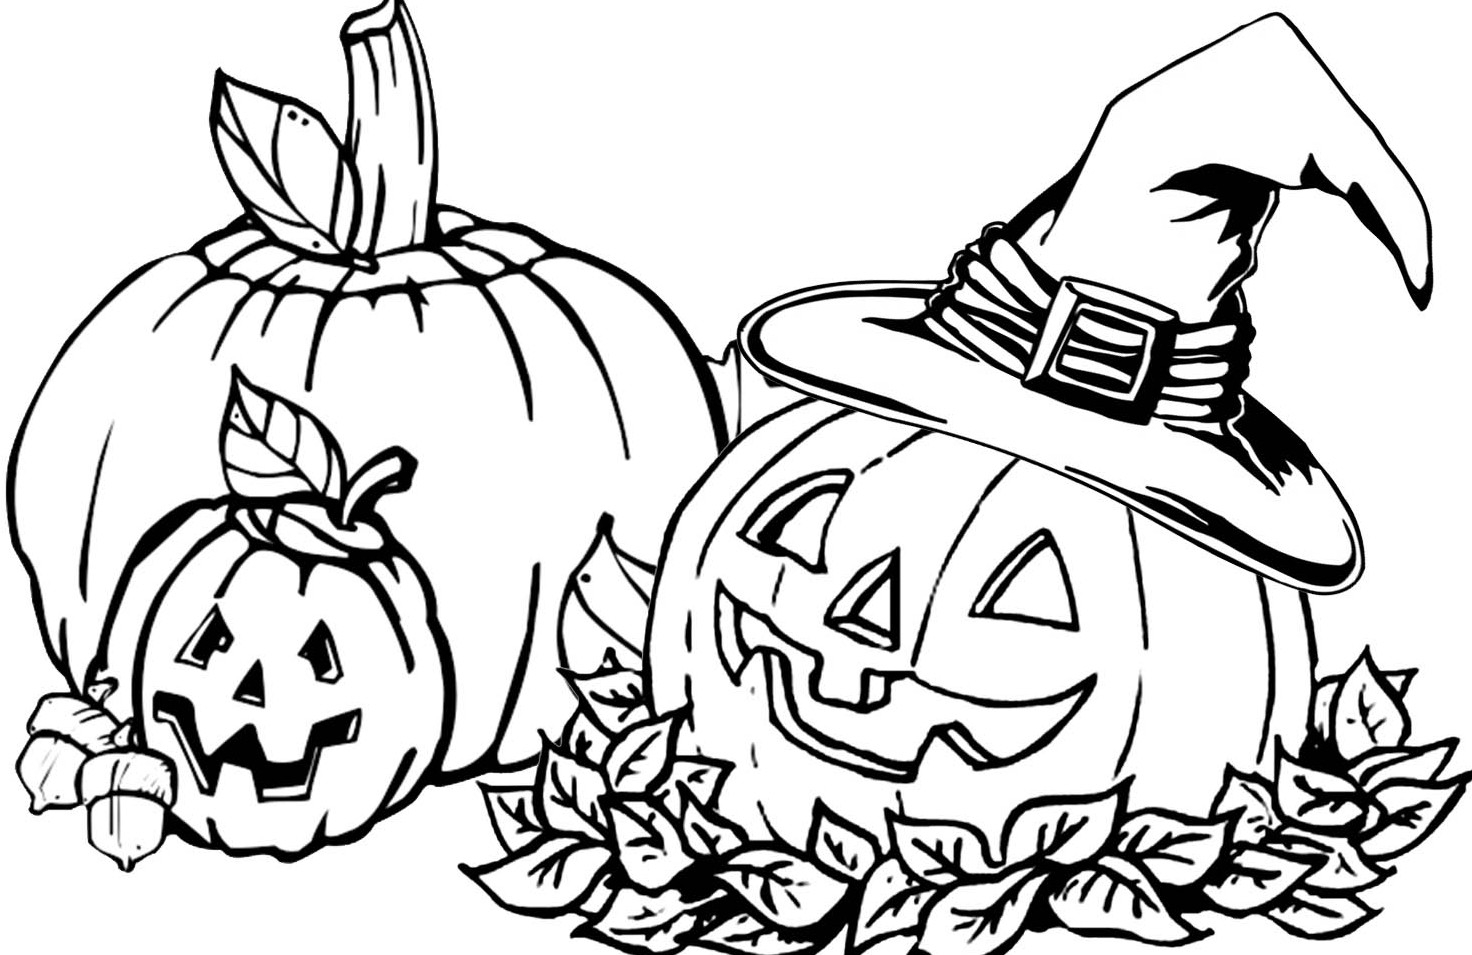 Halloween Pumpkin Coloring Pages Printables Coloring Pages Halloween Fall Pumpkin Coloring Full Size Of Color